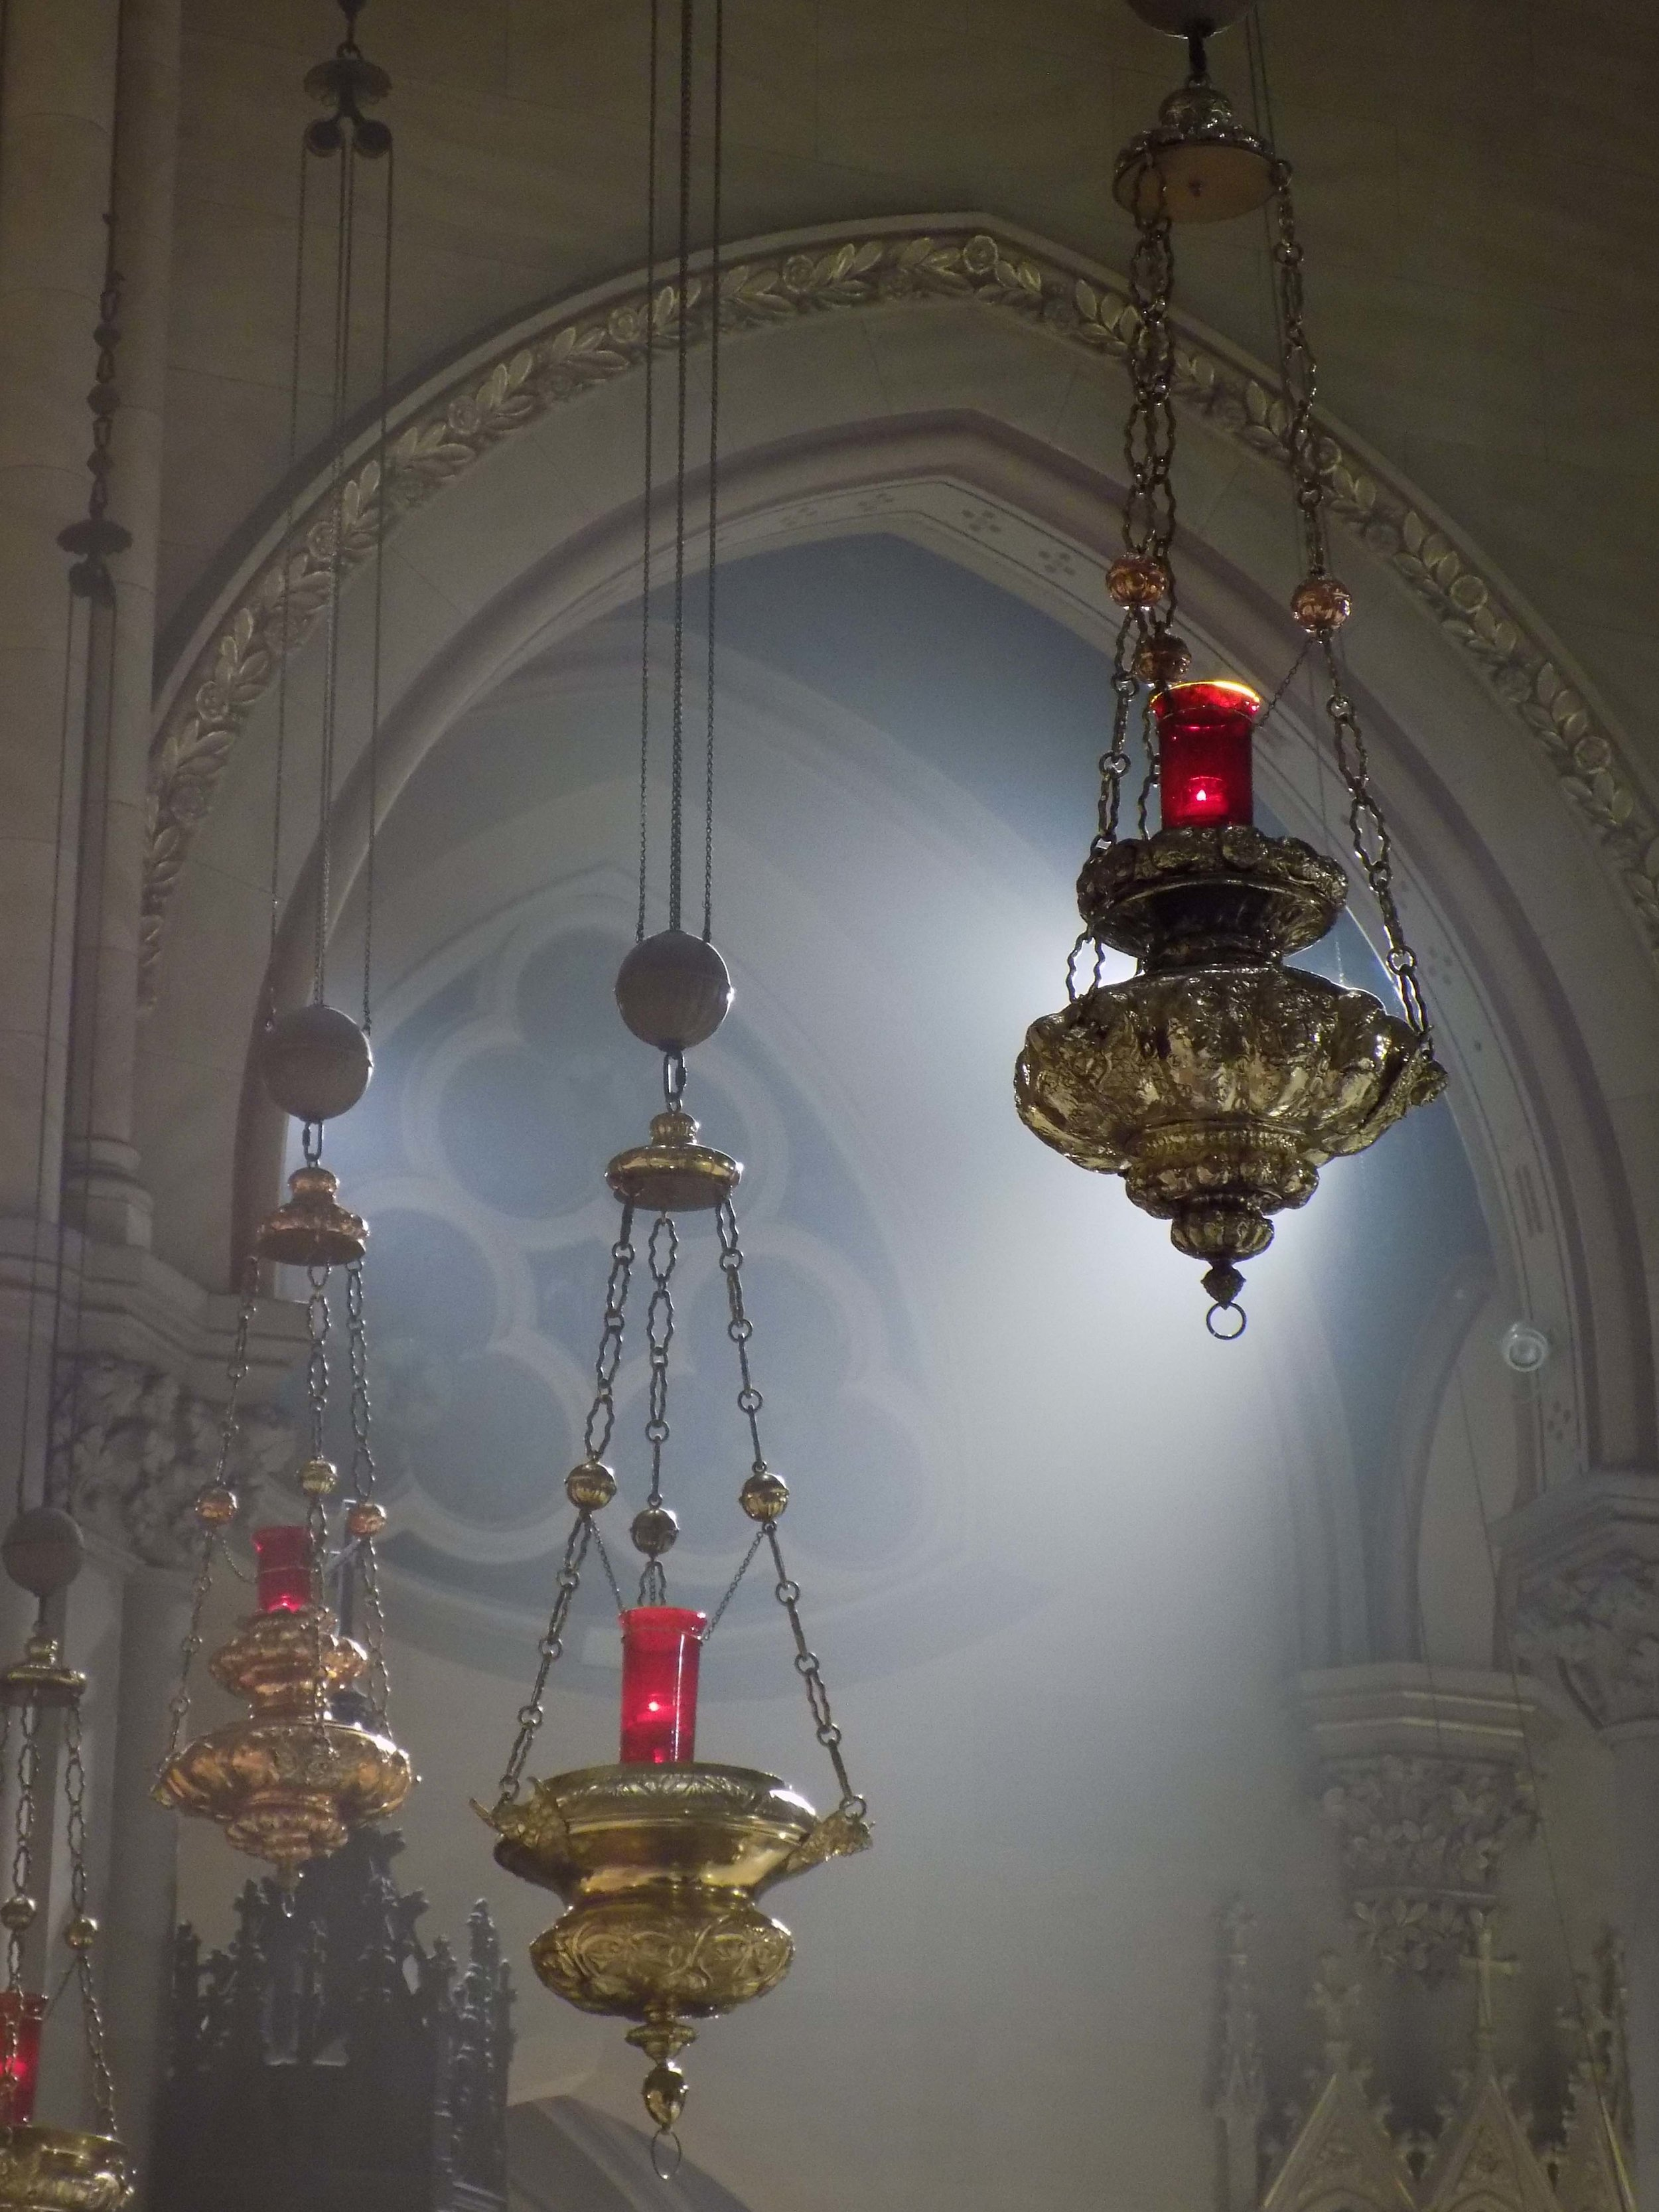 Light shines through incense clouds at Sunday Evensong.